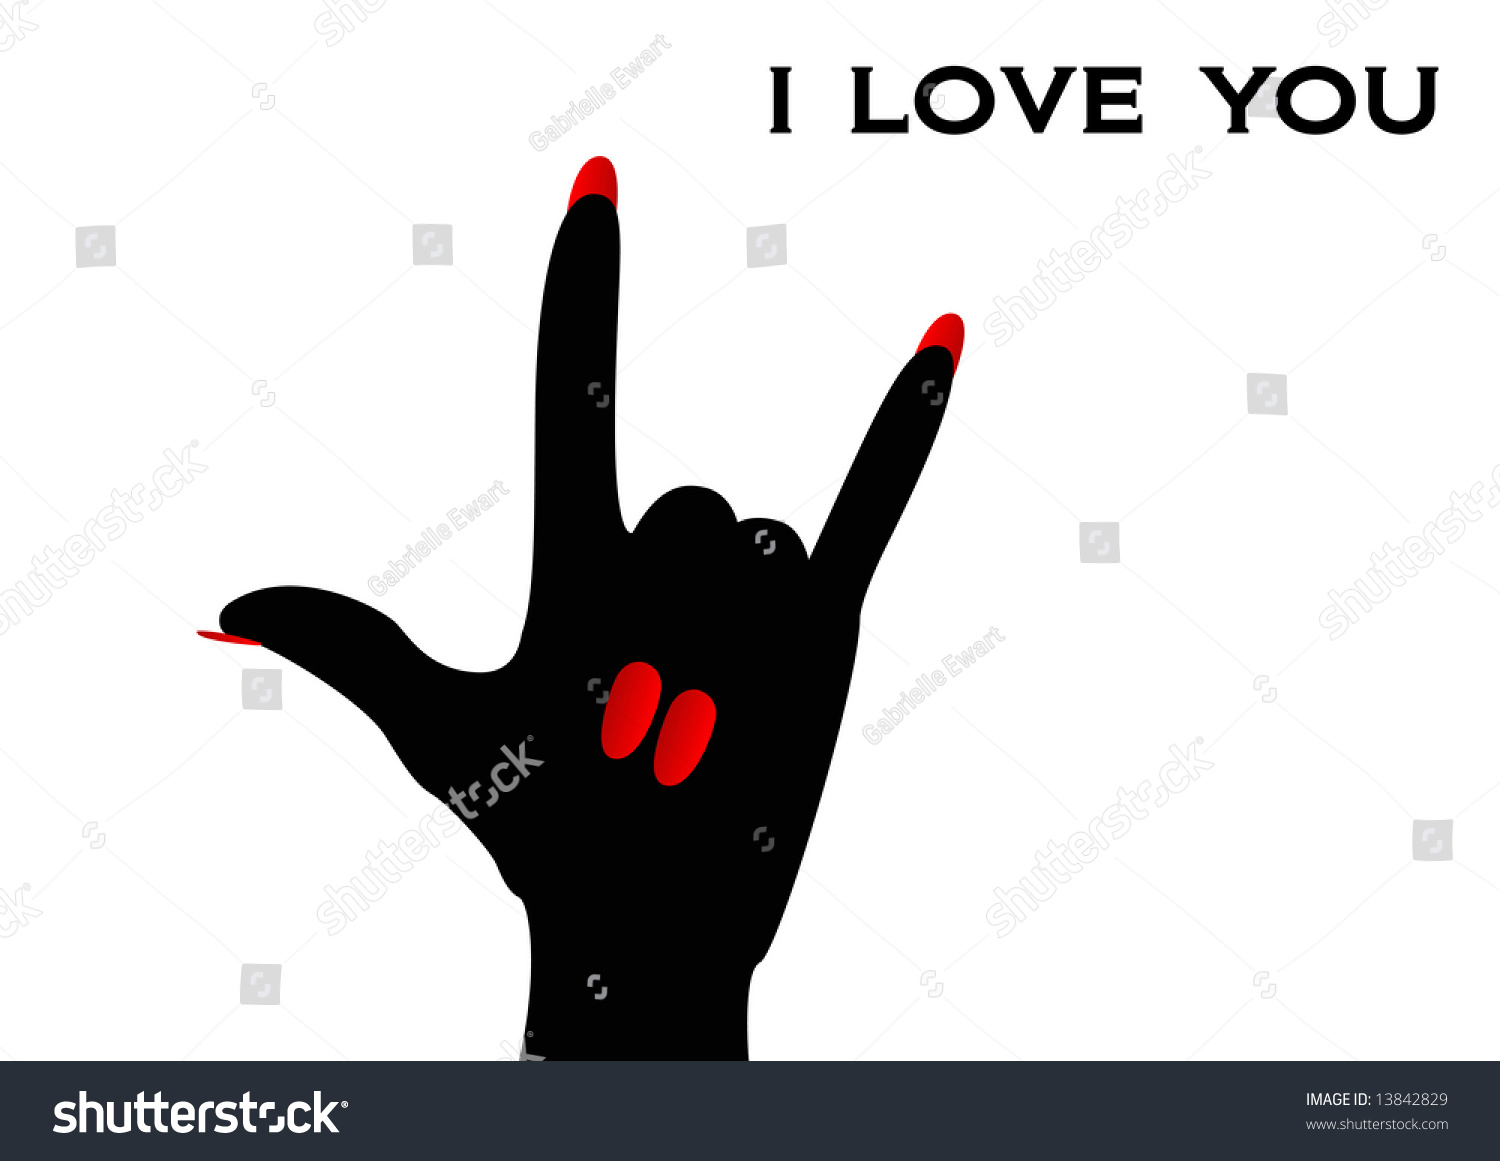 American sign language sign love you stock illustration 13842829 american sign language sign i love you biocorpaavc Image collections